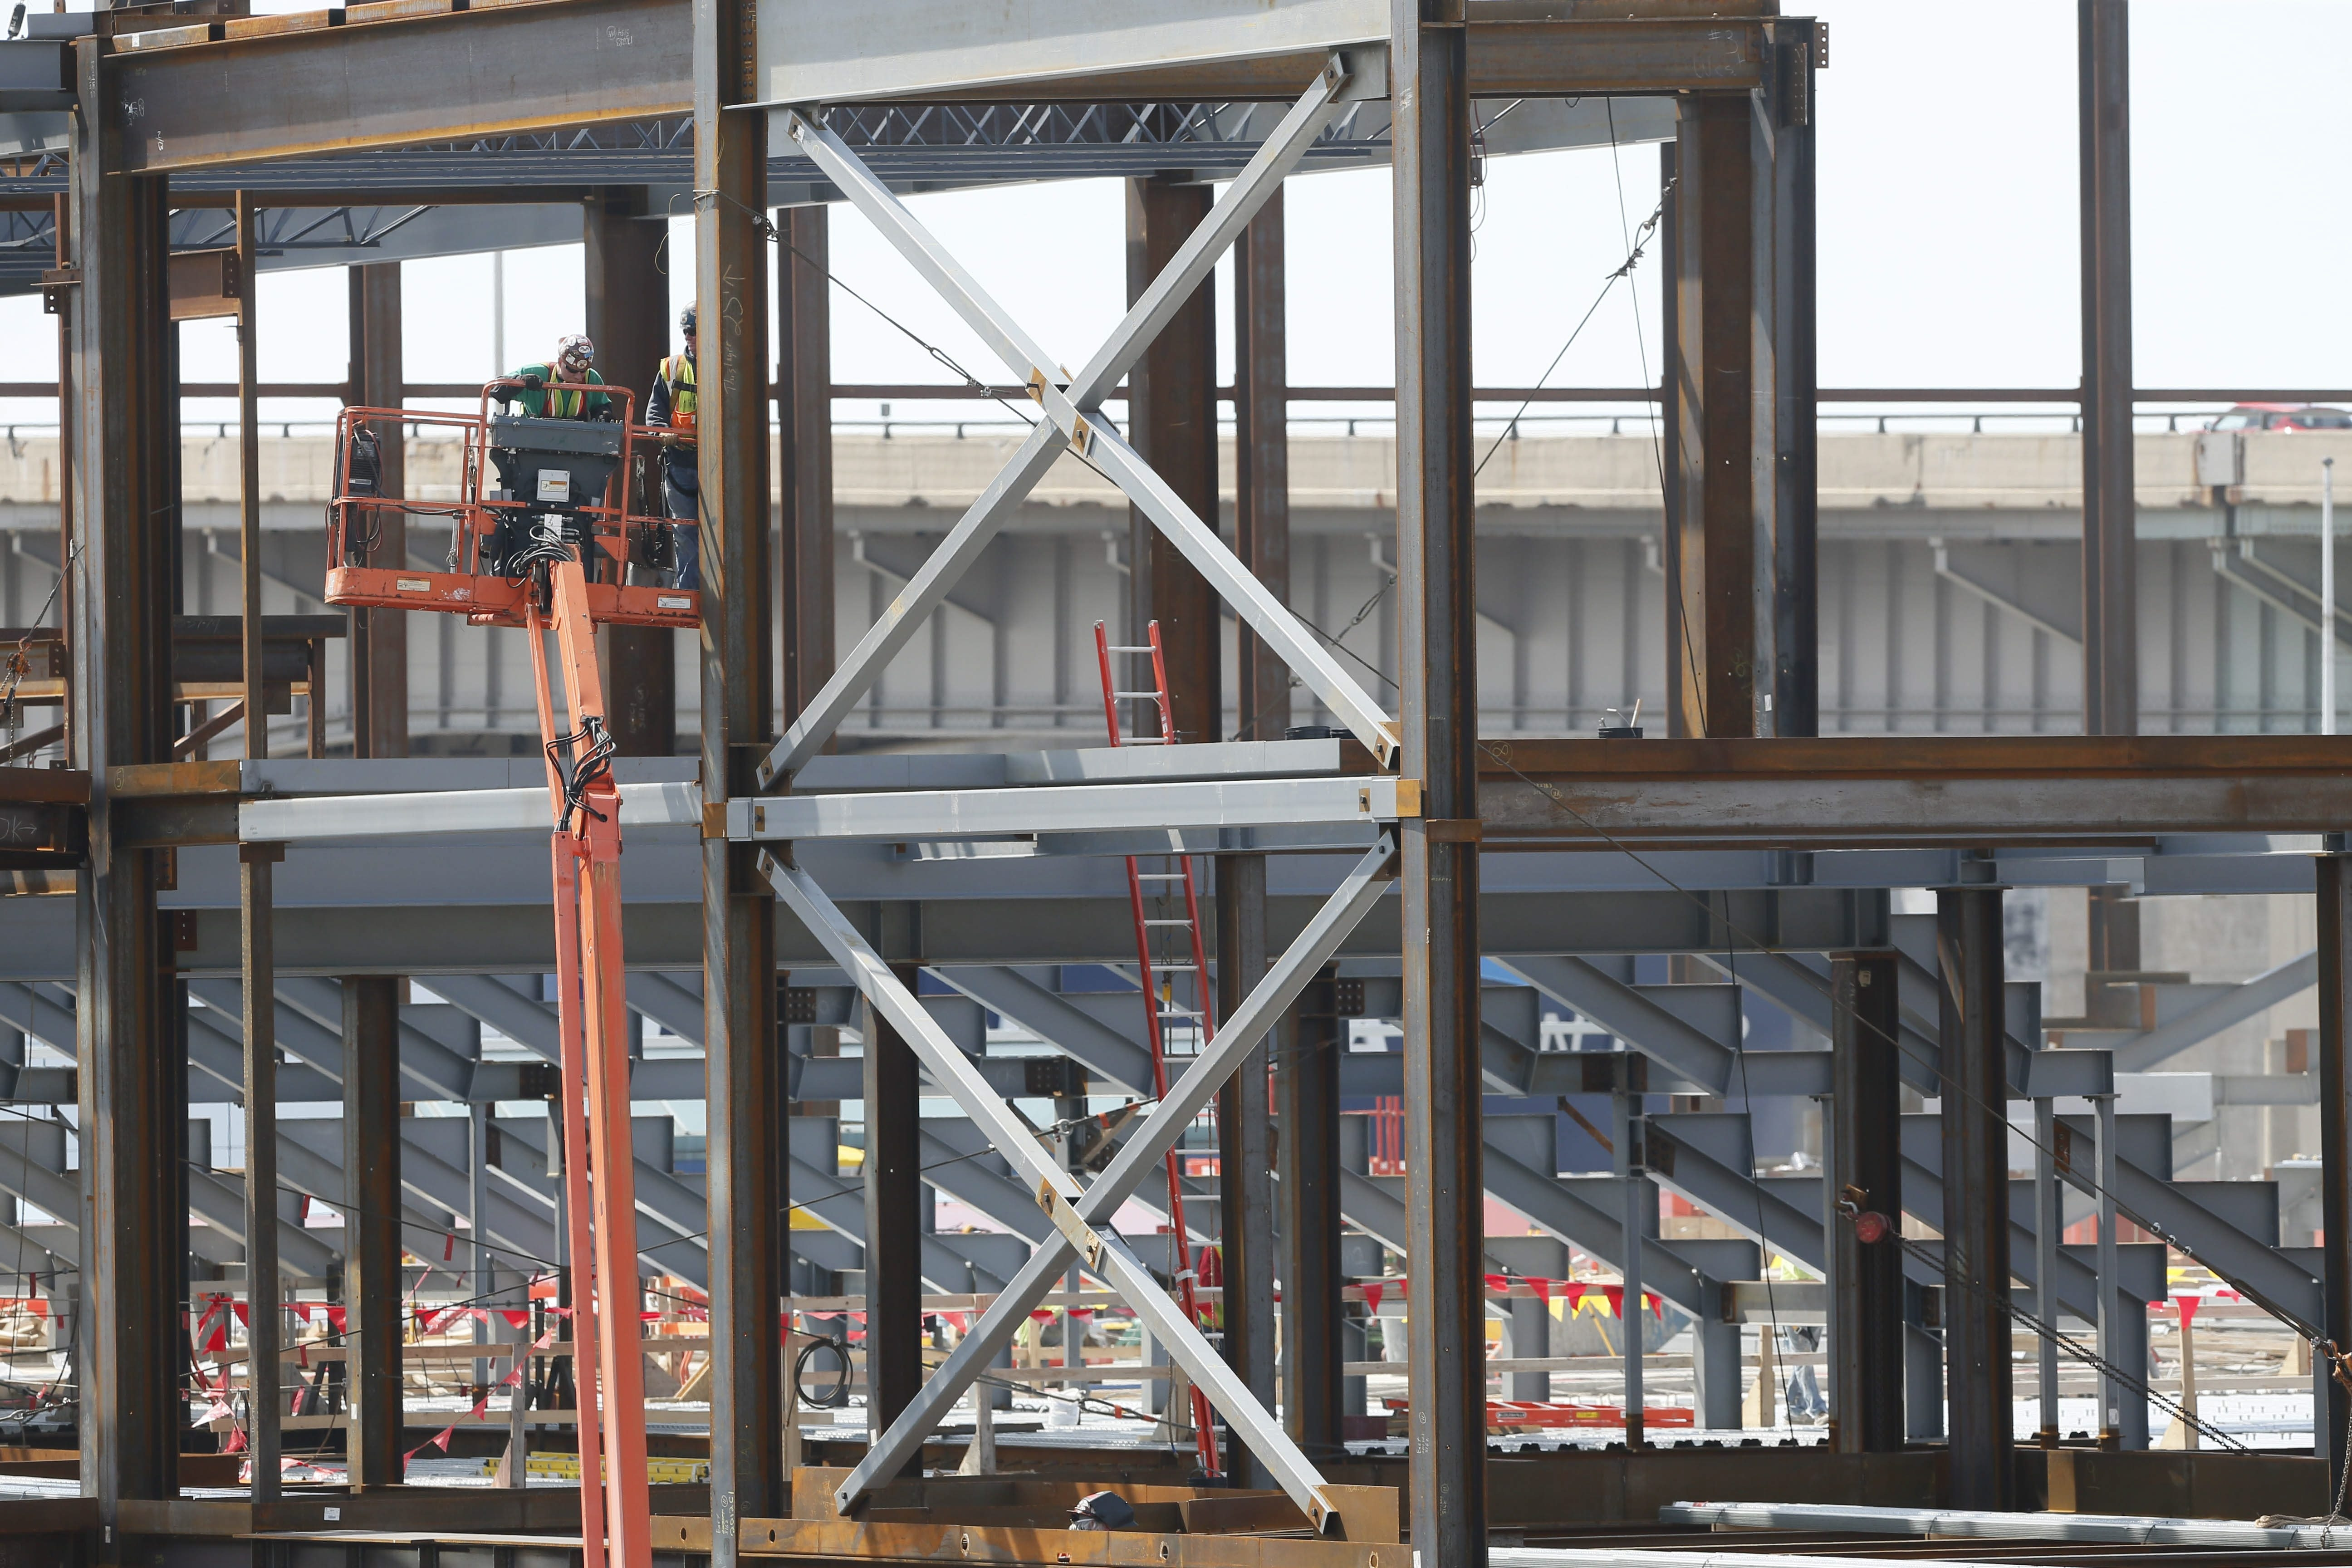 Workmen are setting the framework of a hockey rink six stories above the ground, racing an October deadline.